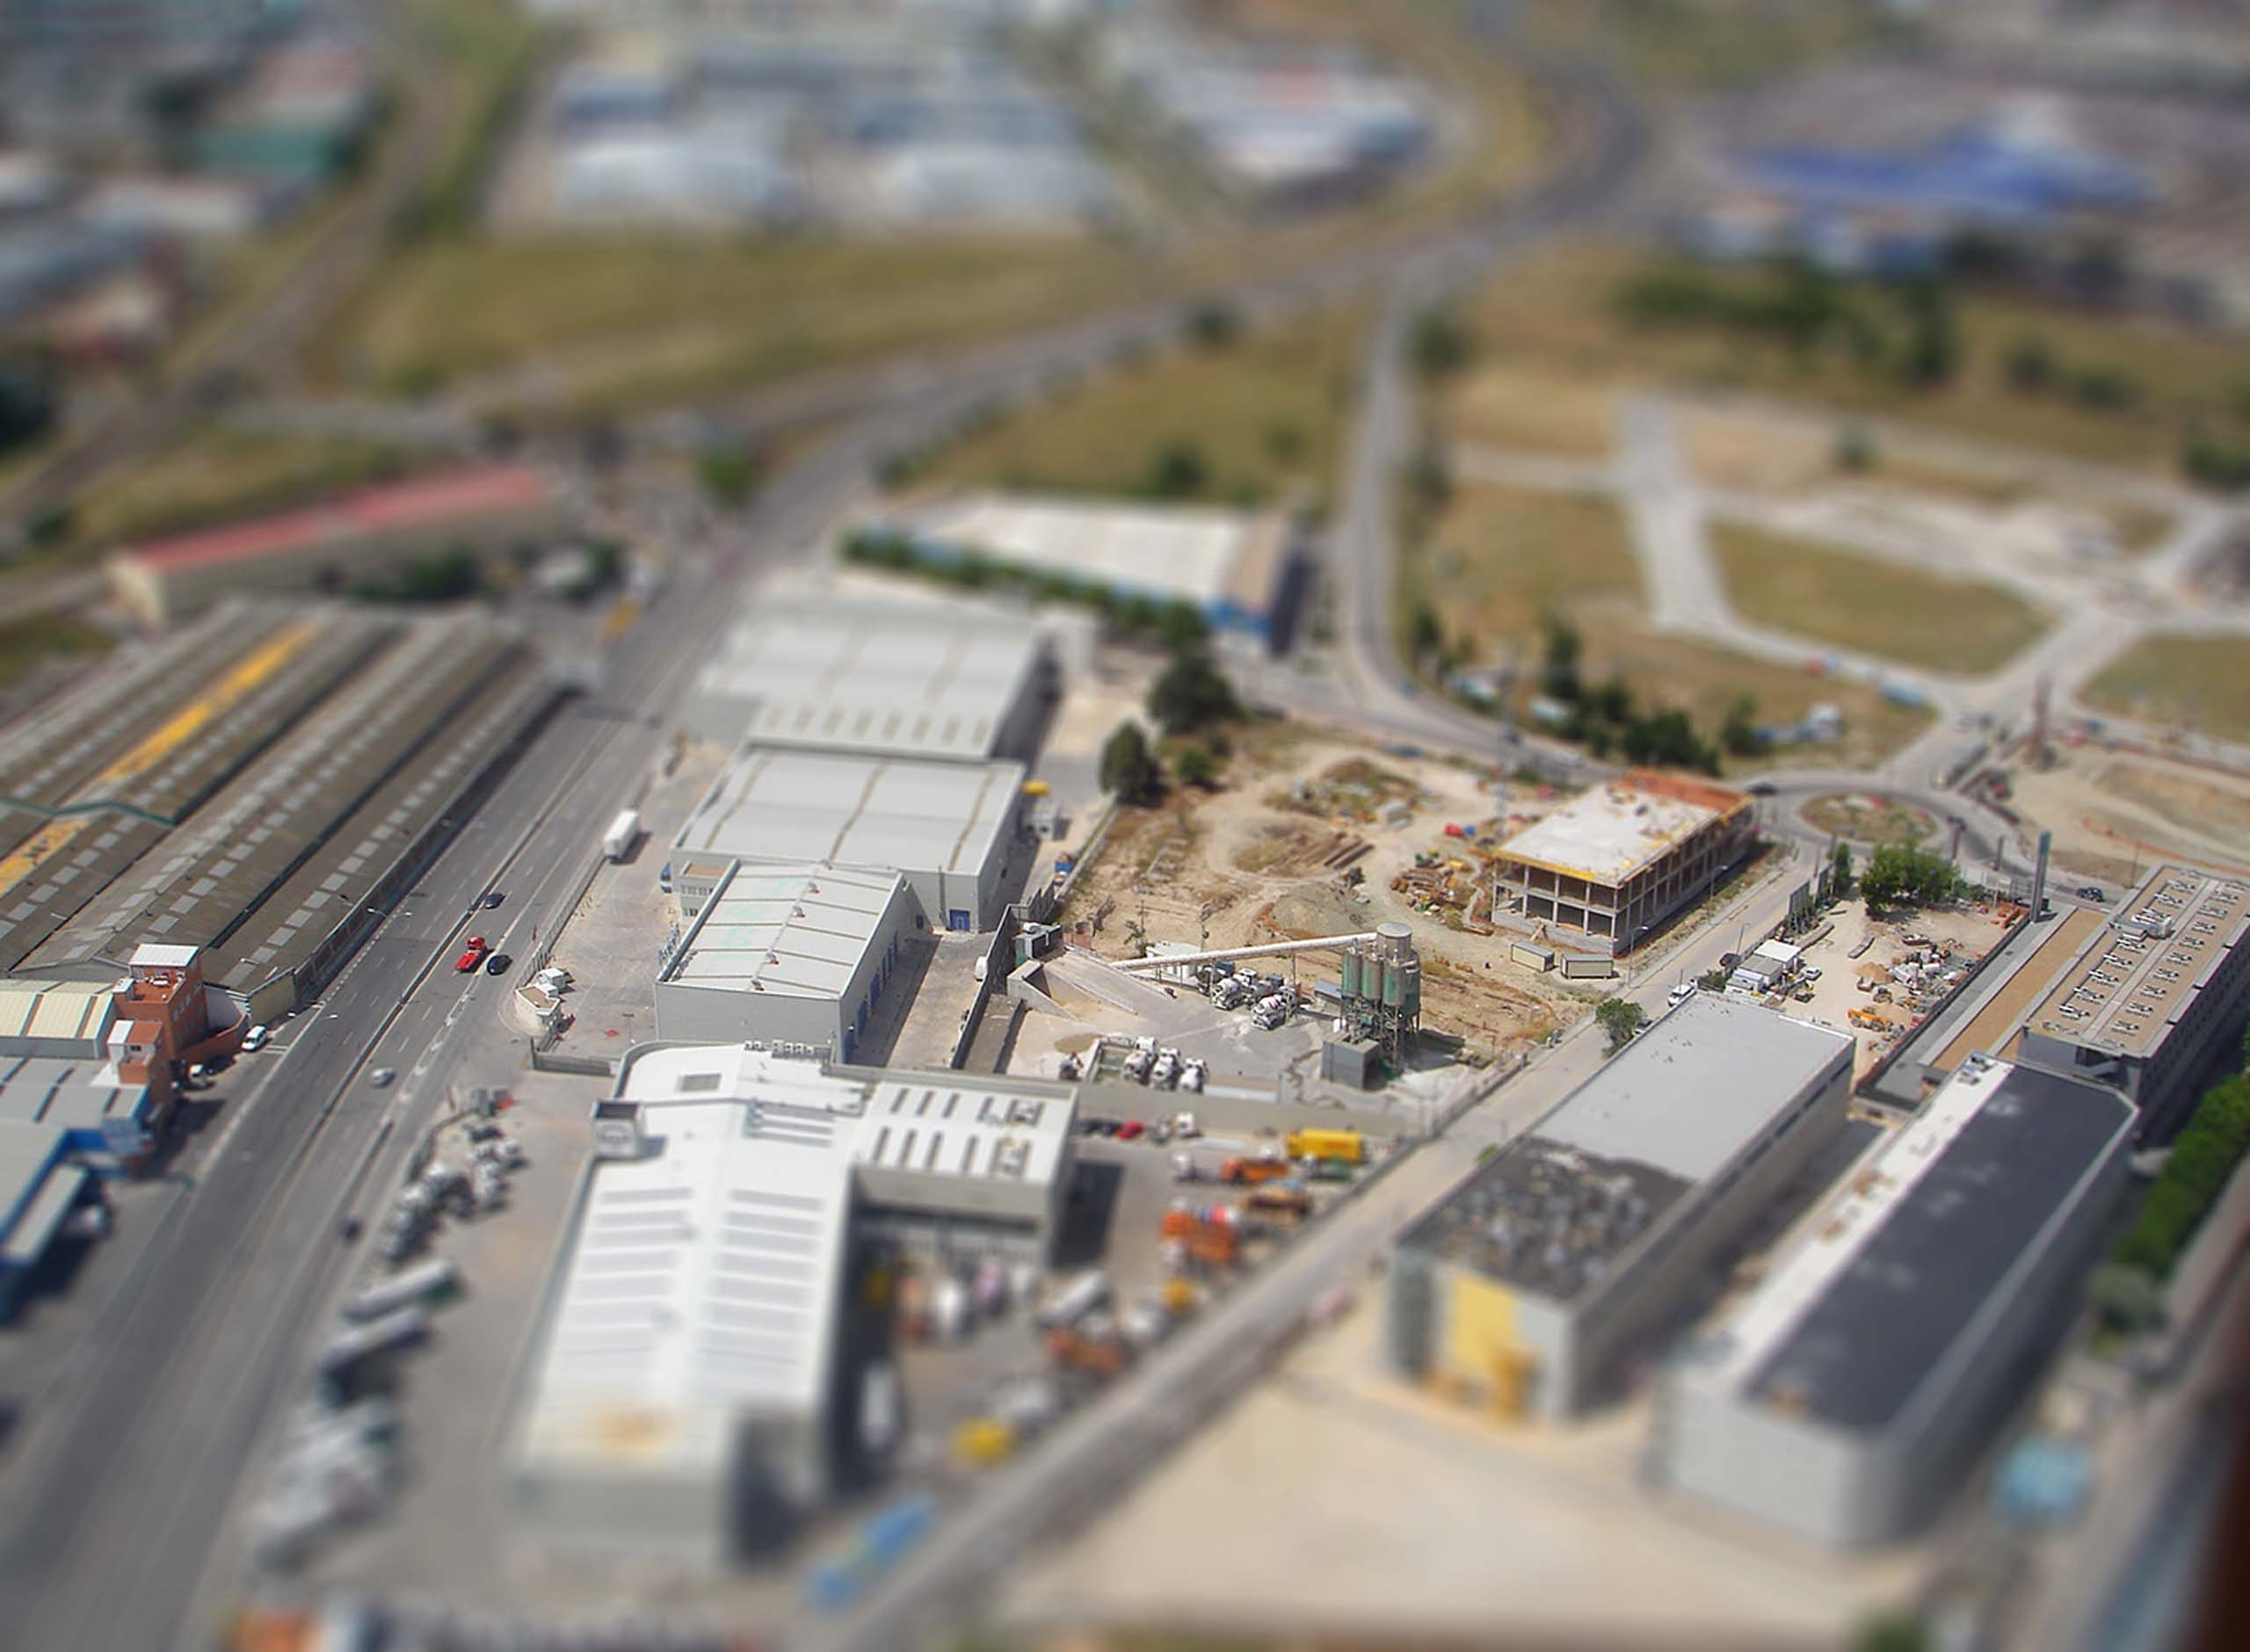 Fabrica from the series Aerial